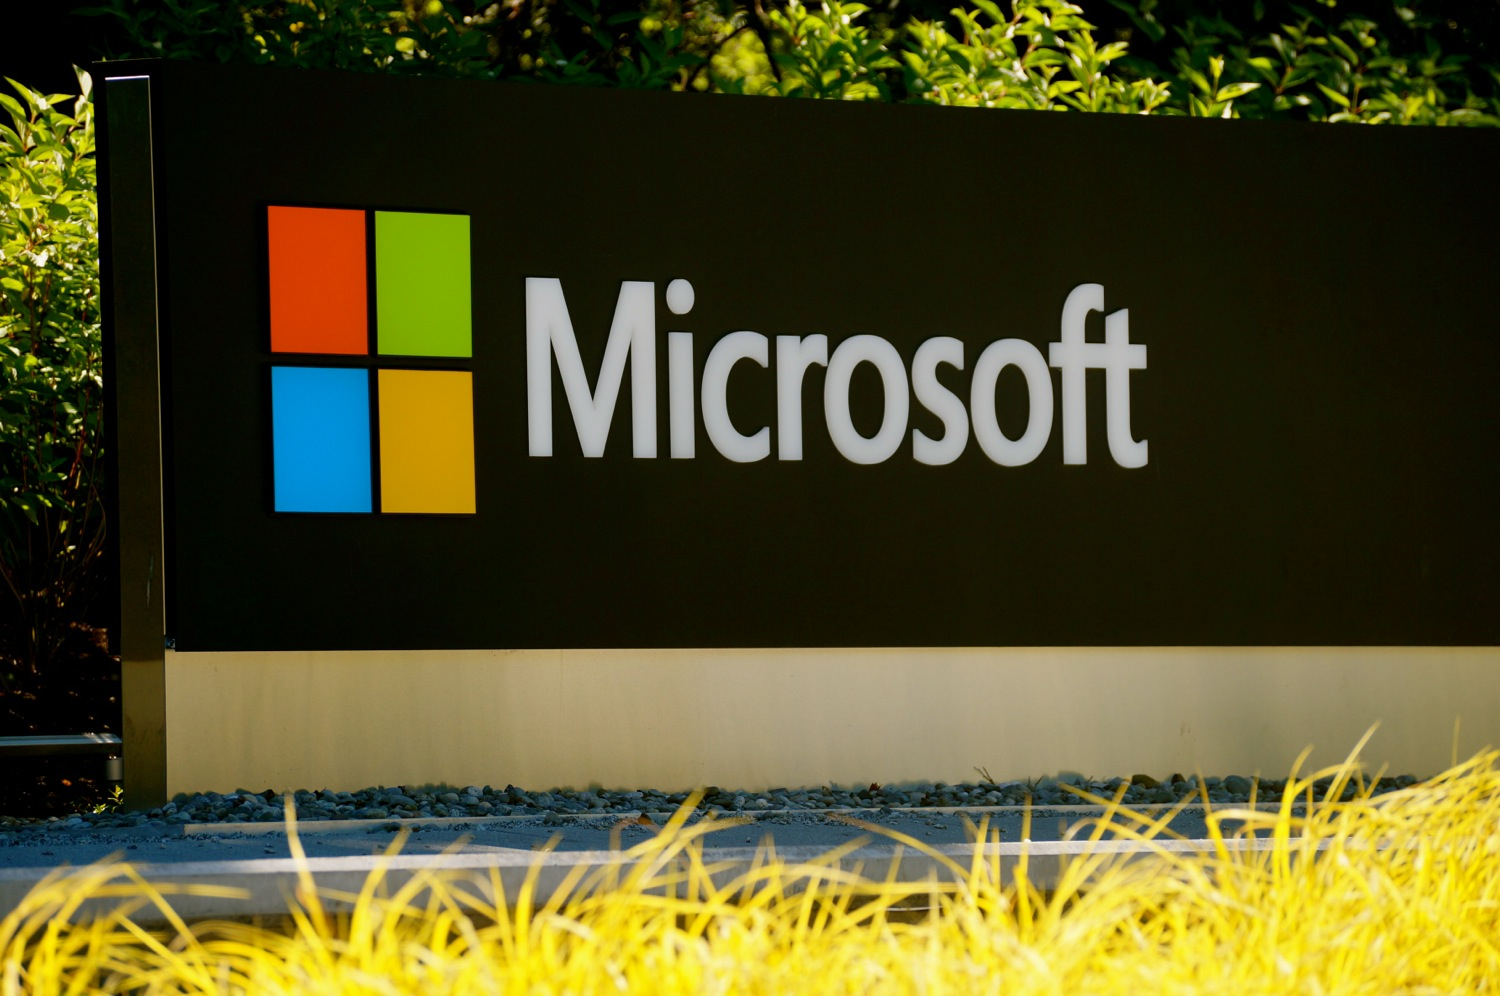 Microsoft reports $26.5B in revenue, up 8%, but IRS audit and restructuring cut into profits